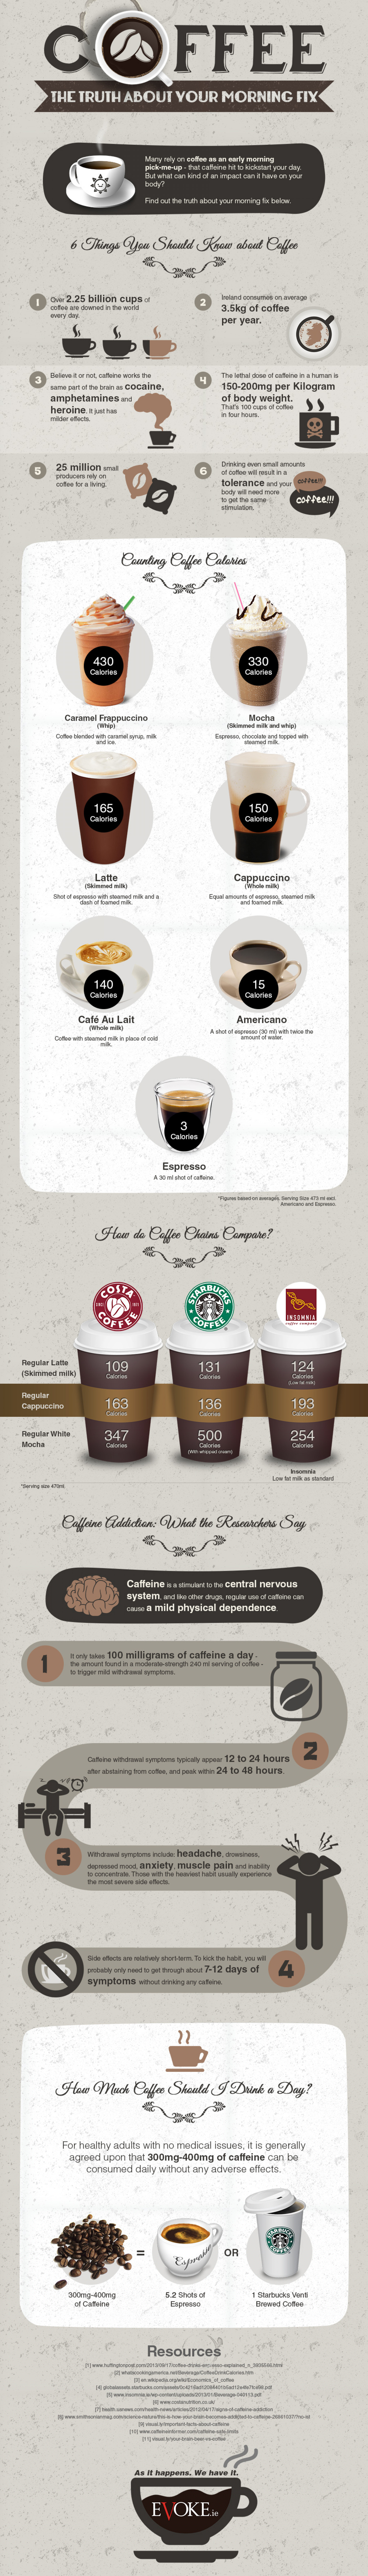 Coffee – The Truth about your Morning Fix, An Infographic Infographic